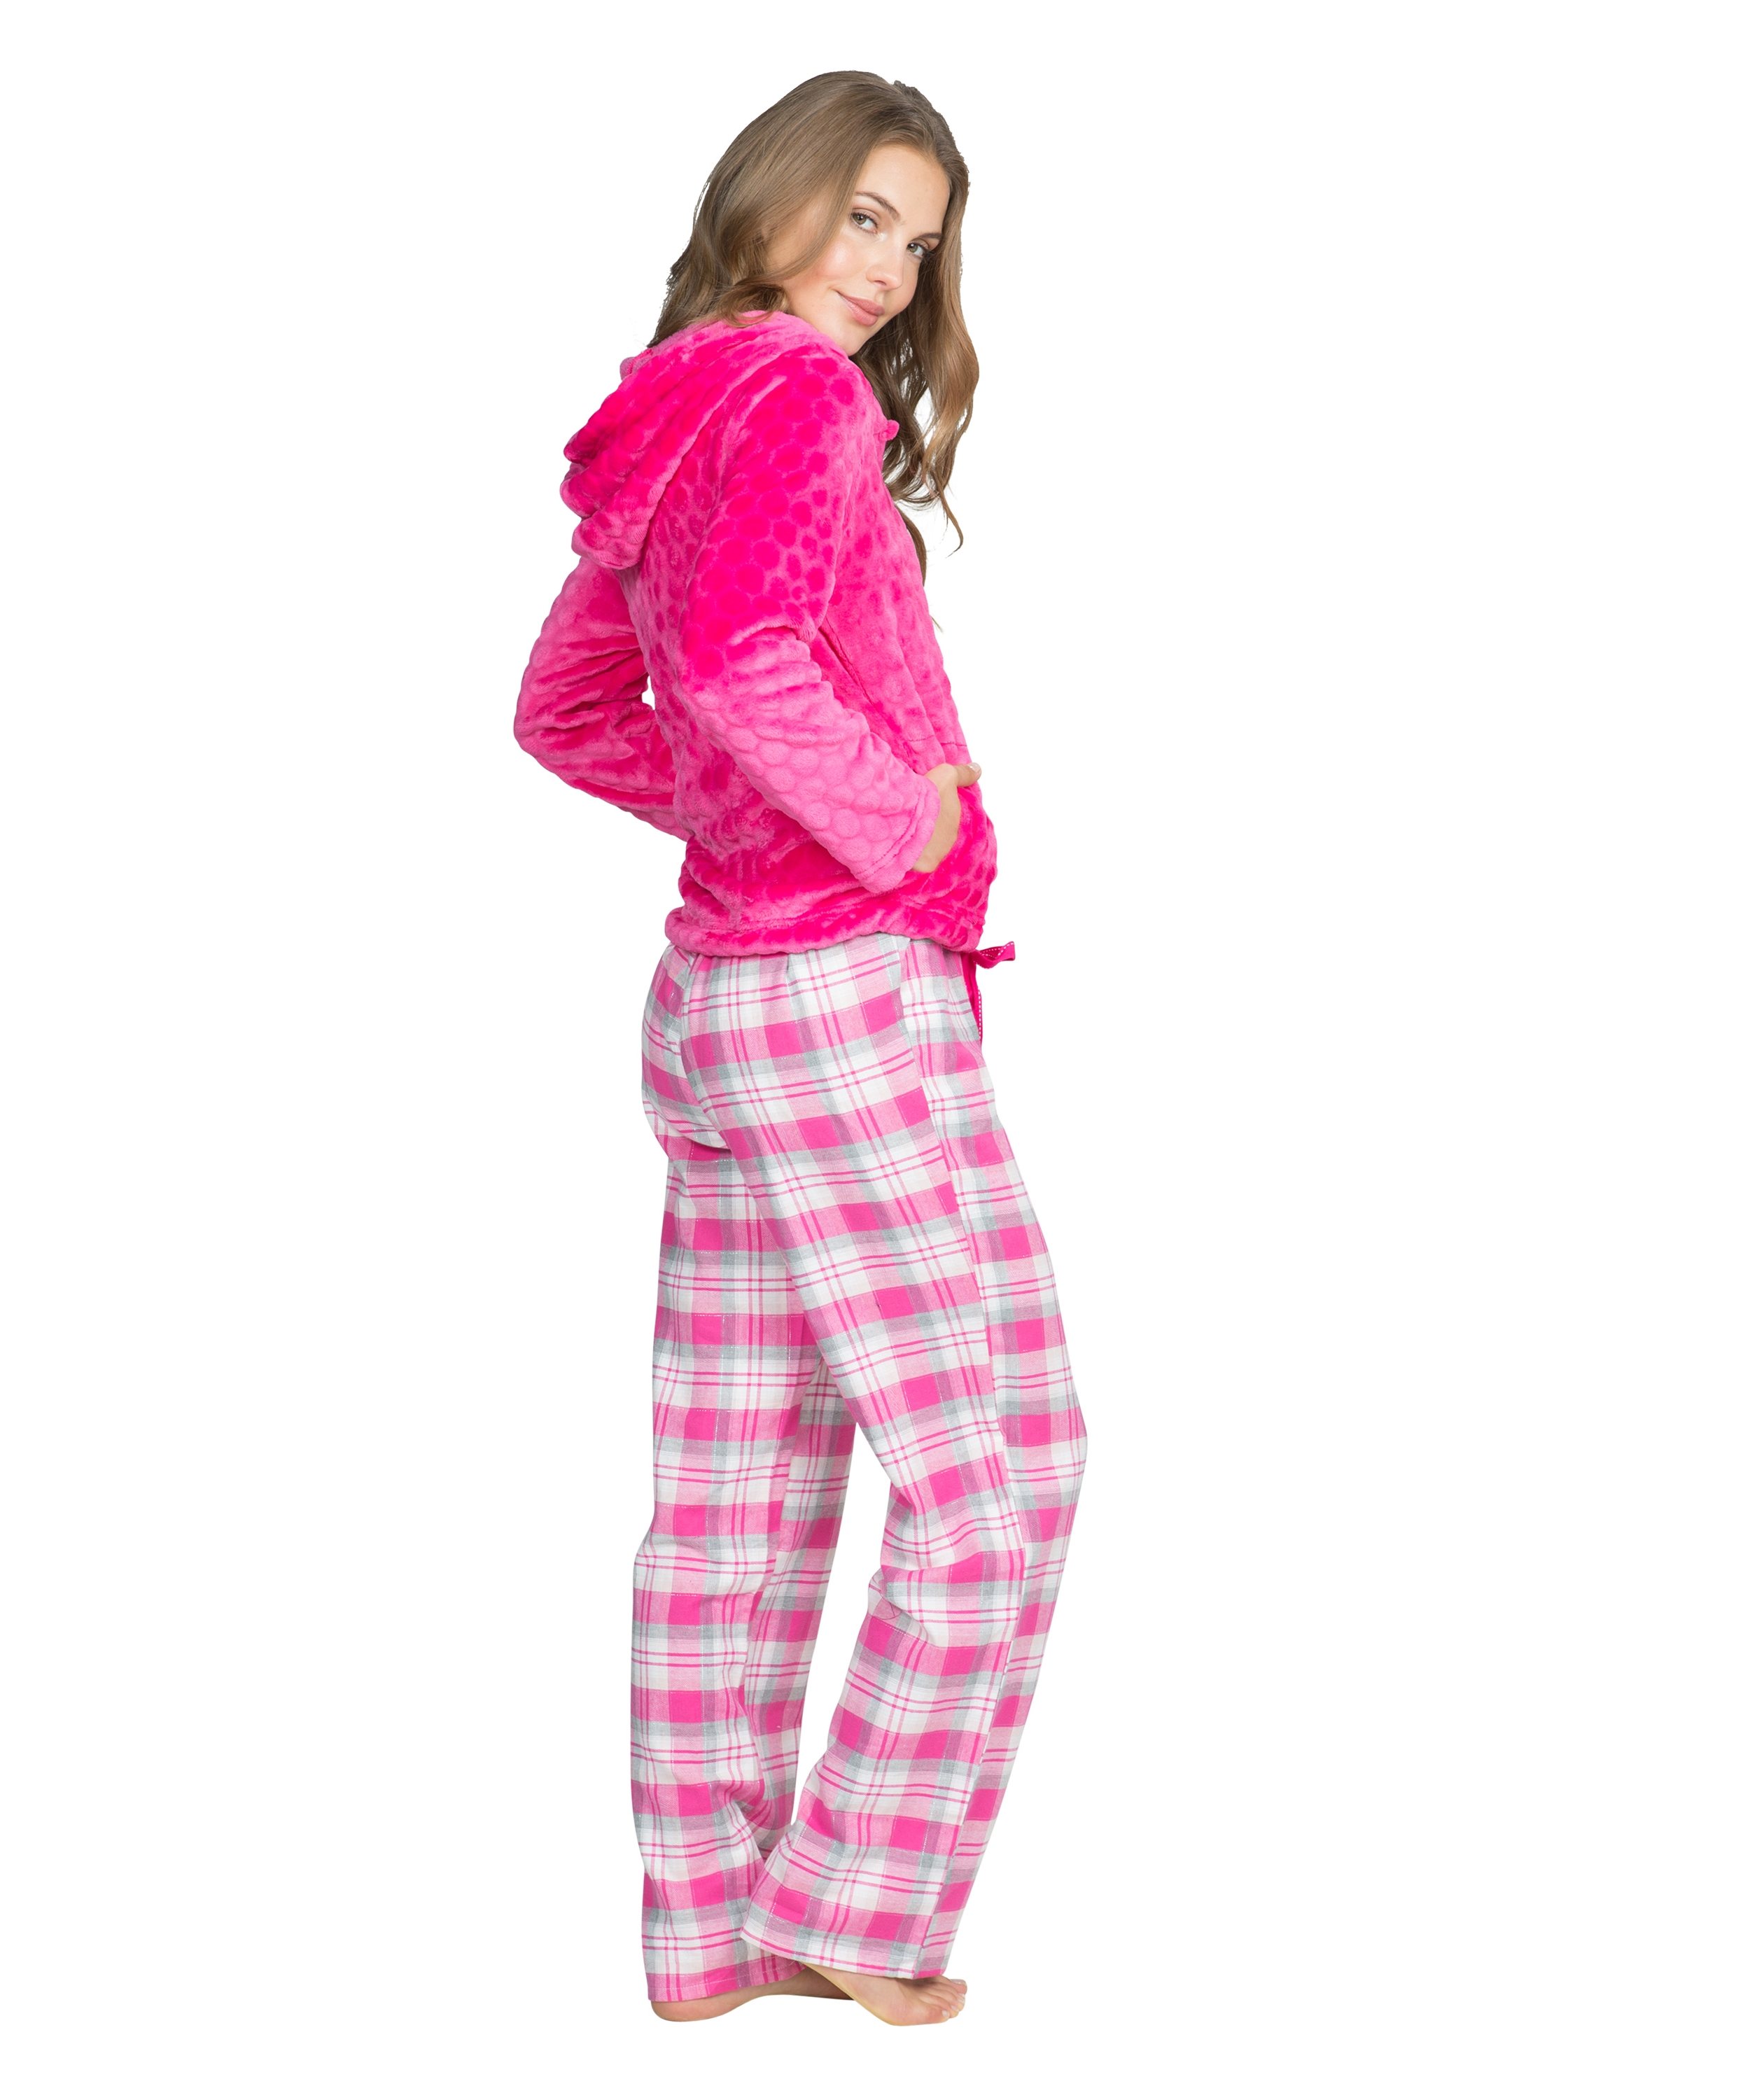 Pyjama pants Teddy check, Roze, main